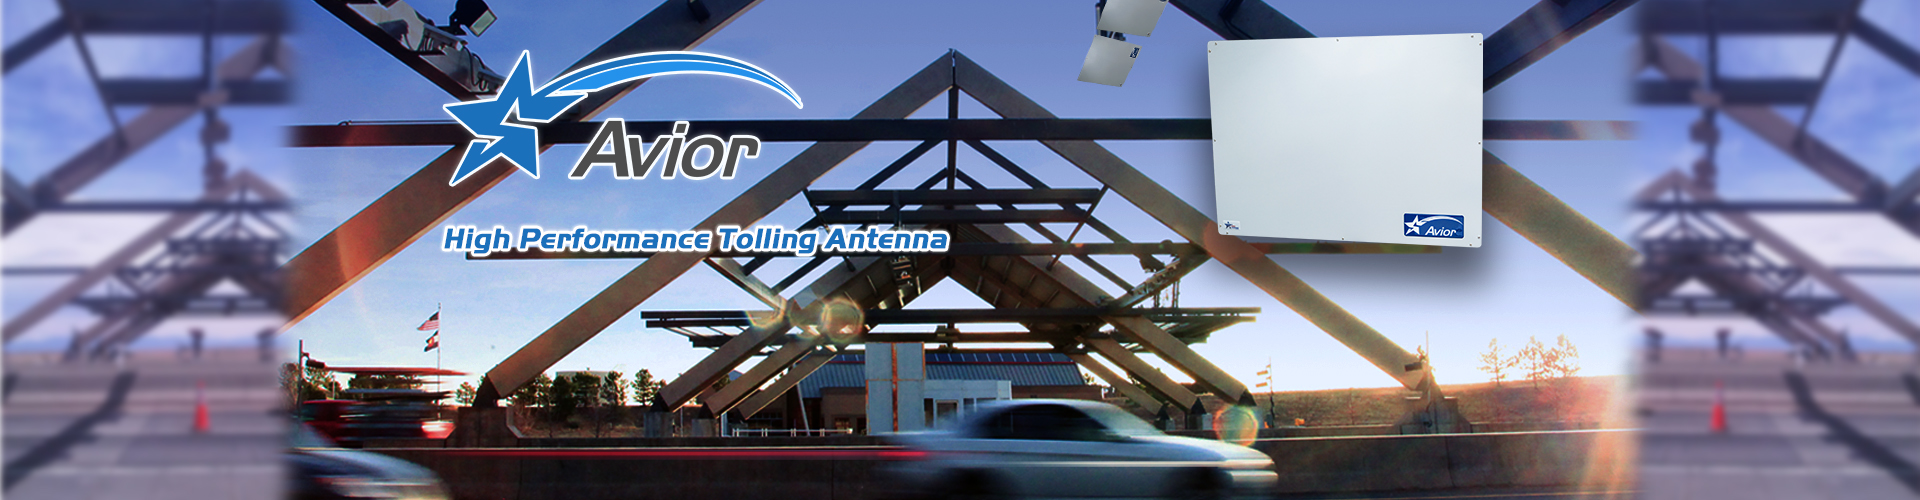 Avior High Performance Tolling Antenna